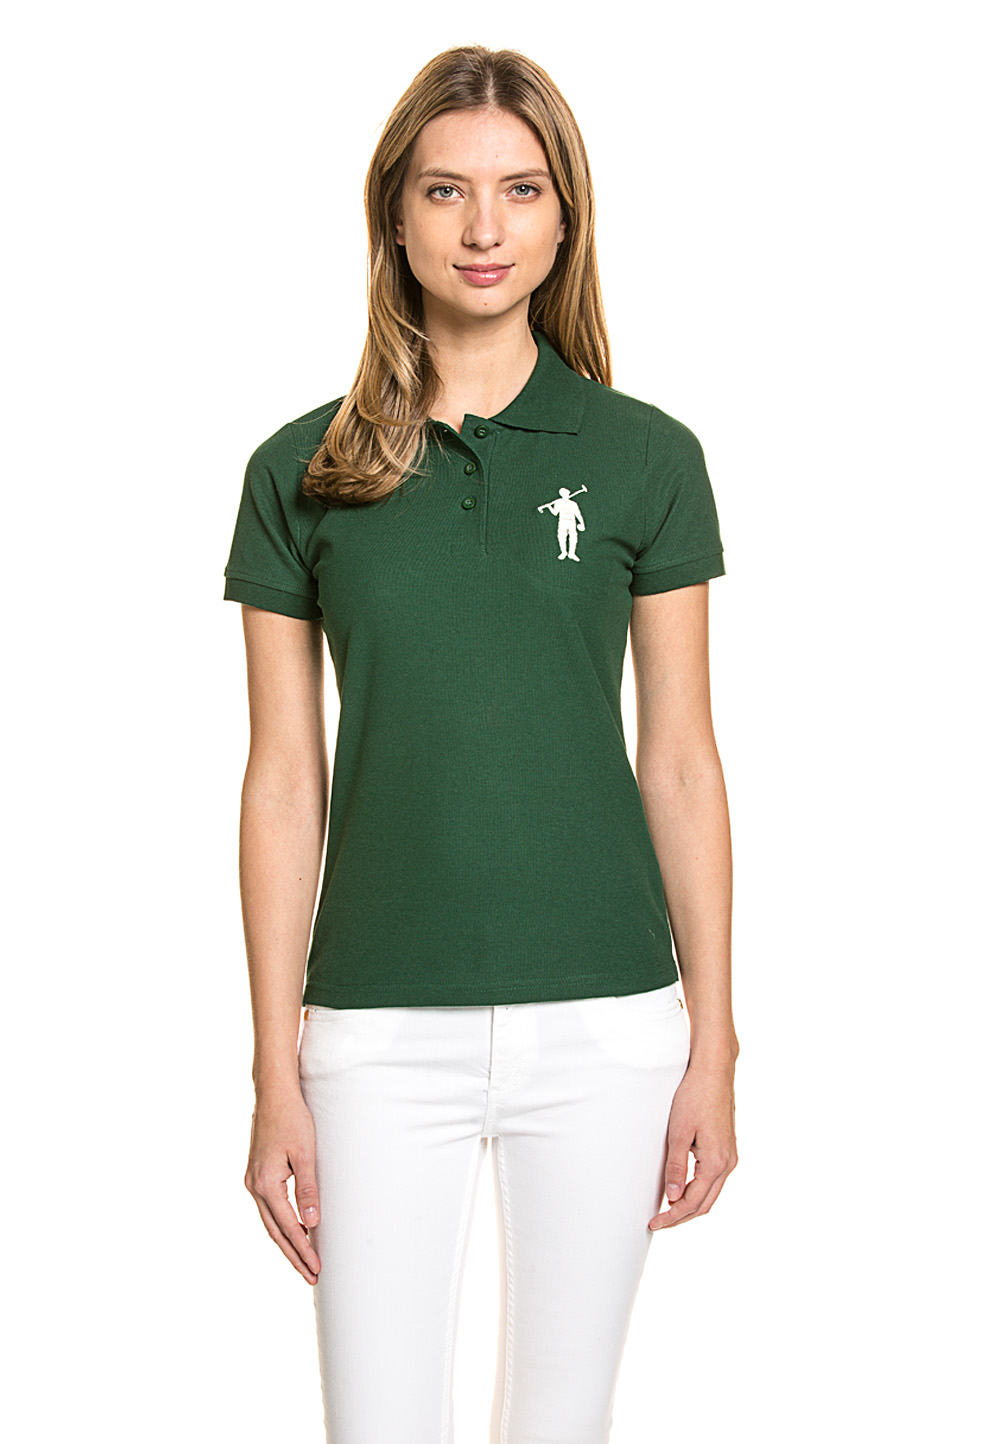 Polo Club Polo-Shirt, Custom Fit grün | Bekleidung > Shirts > Poloshirts | Polo Club